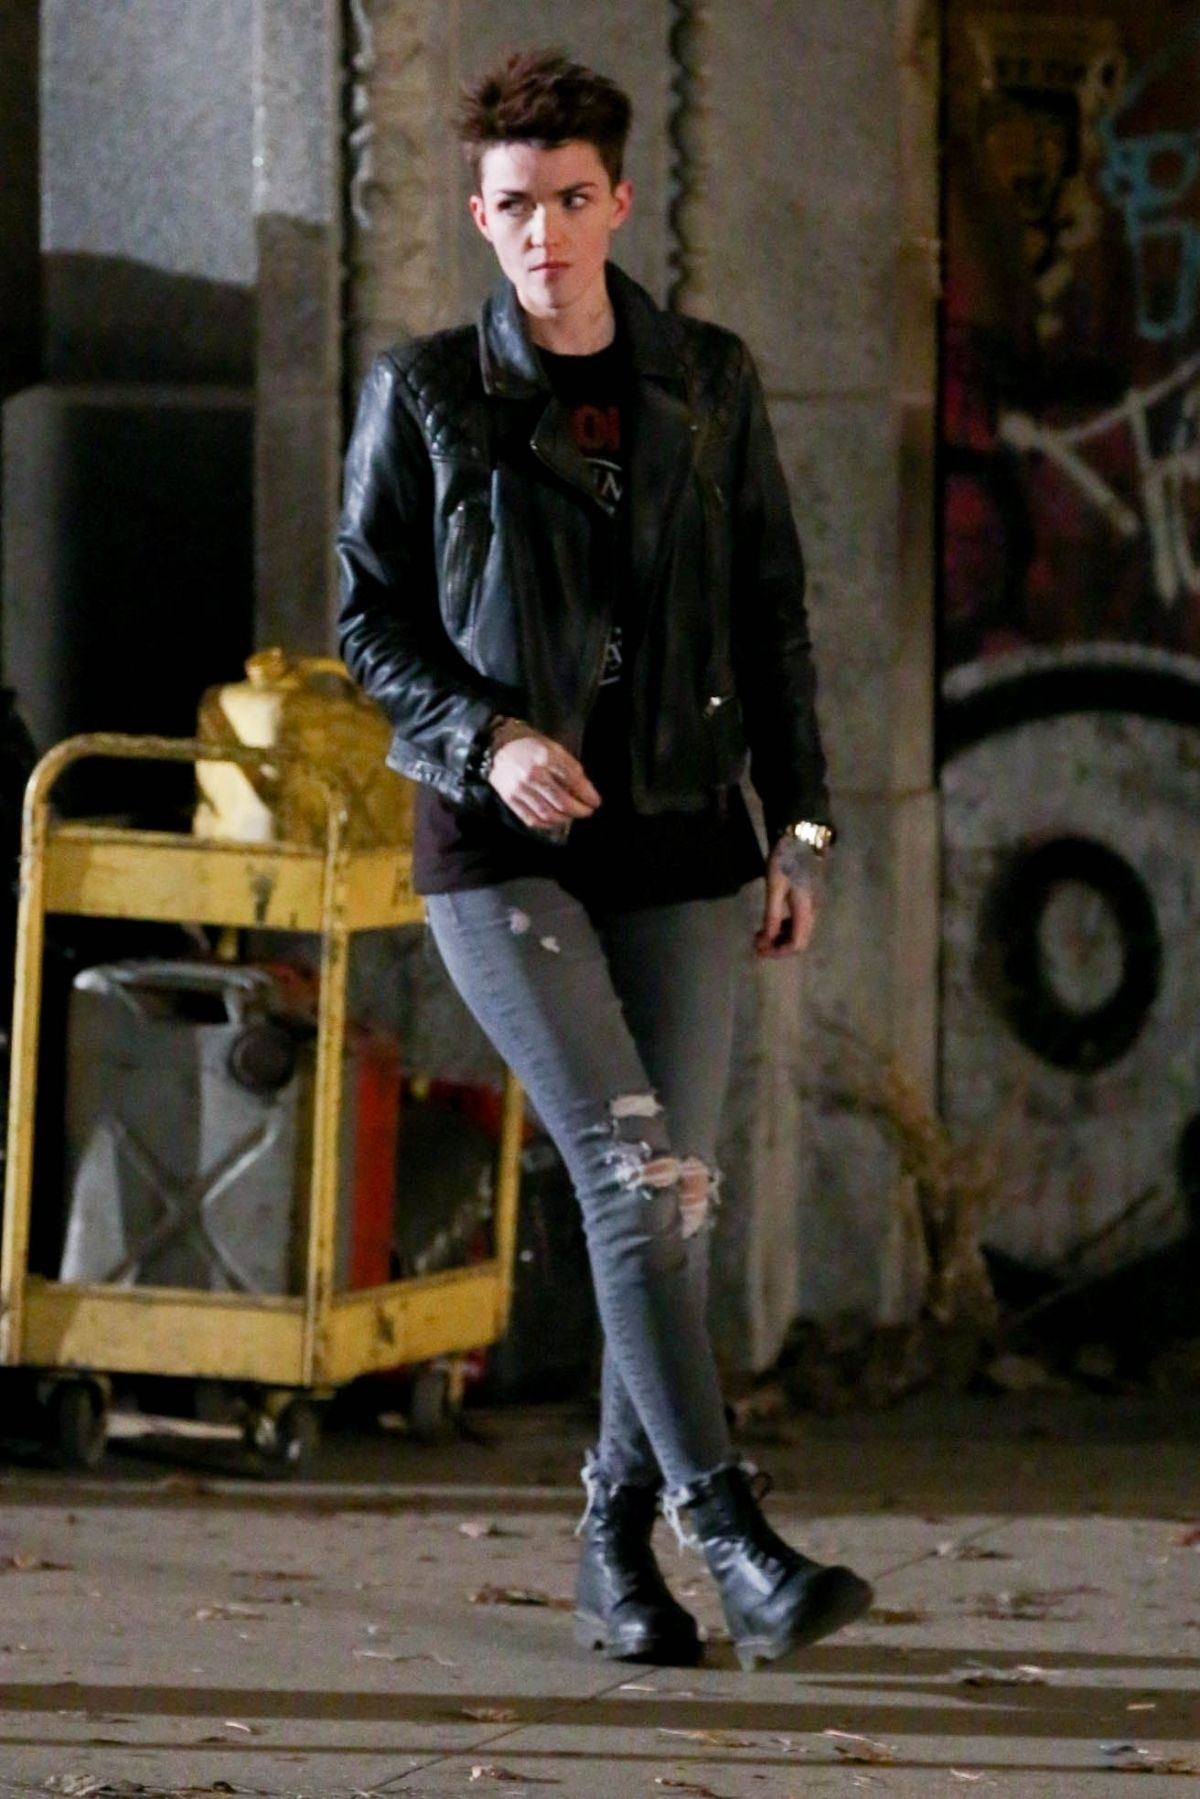 Ruby Rose As Batwoman For Dc S New Tv Pilot In Chicago 03